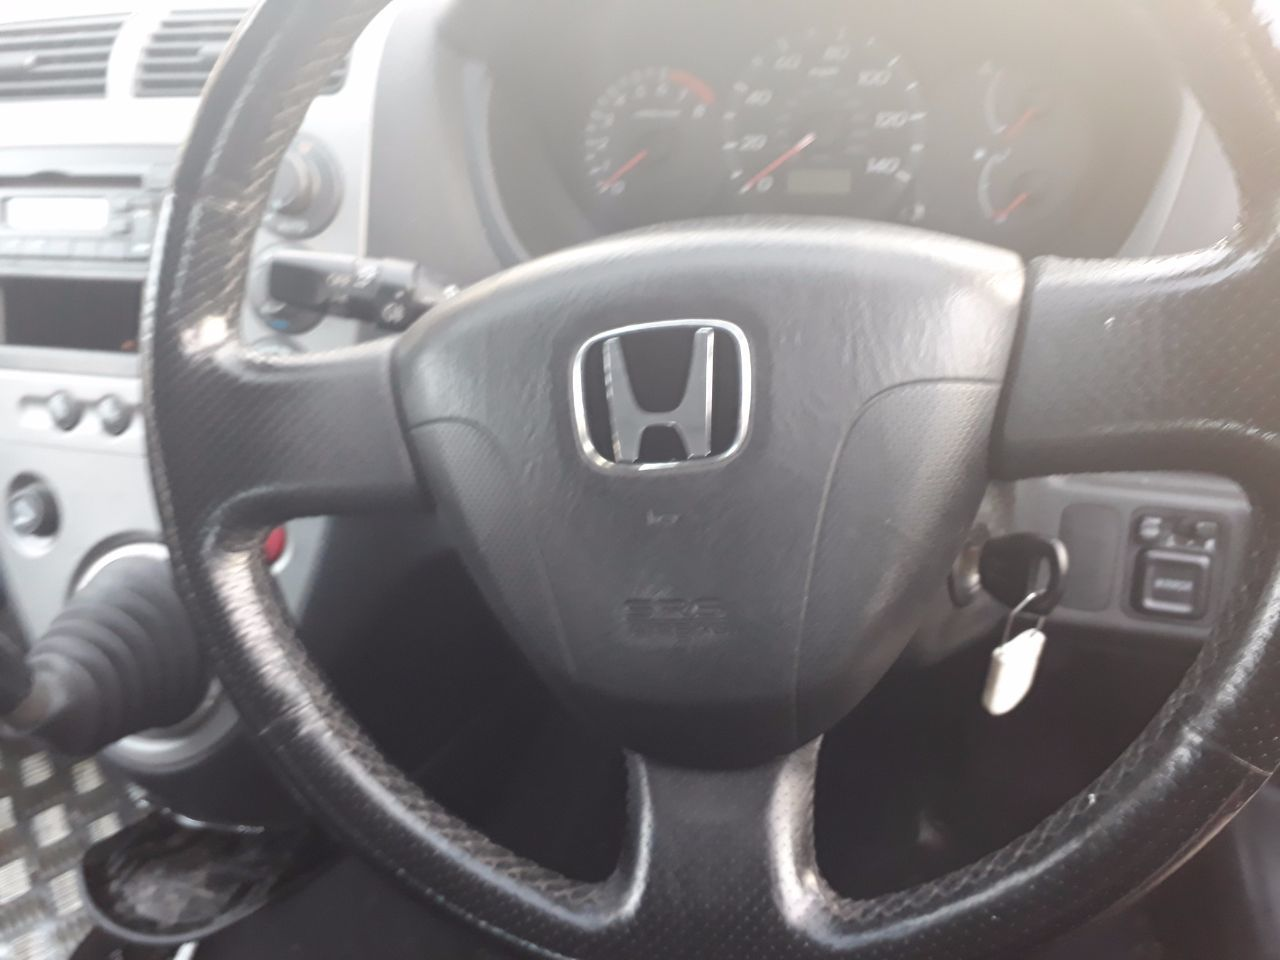 2002 Honda Civic 1.6 i-VTEC SE Executive 5dr